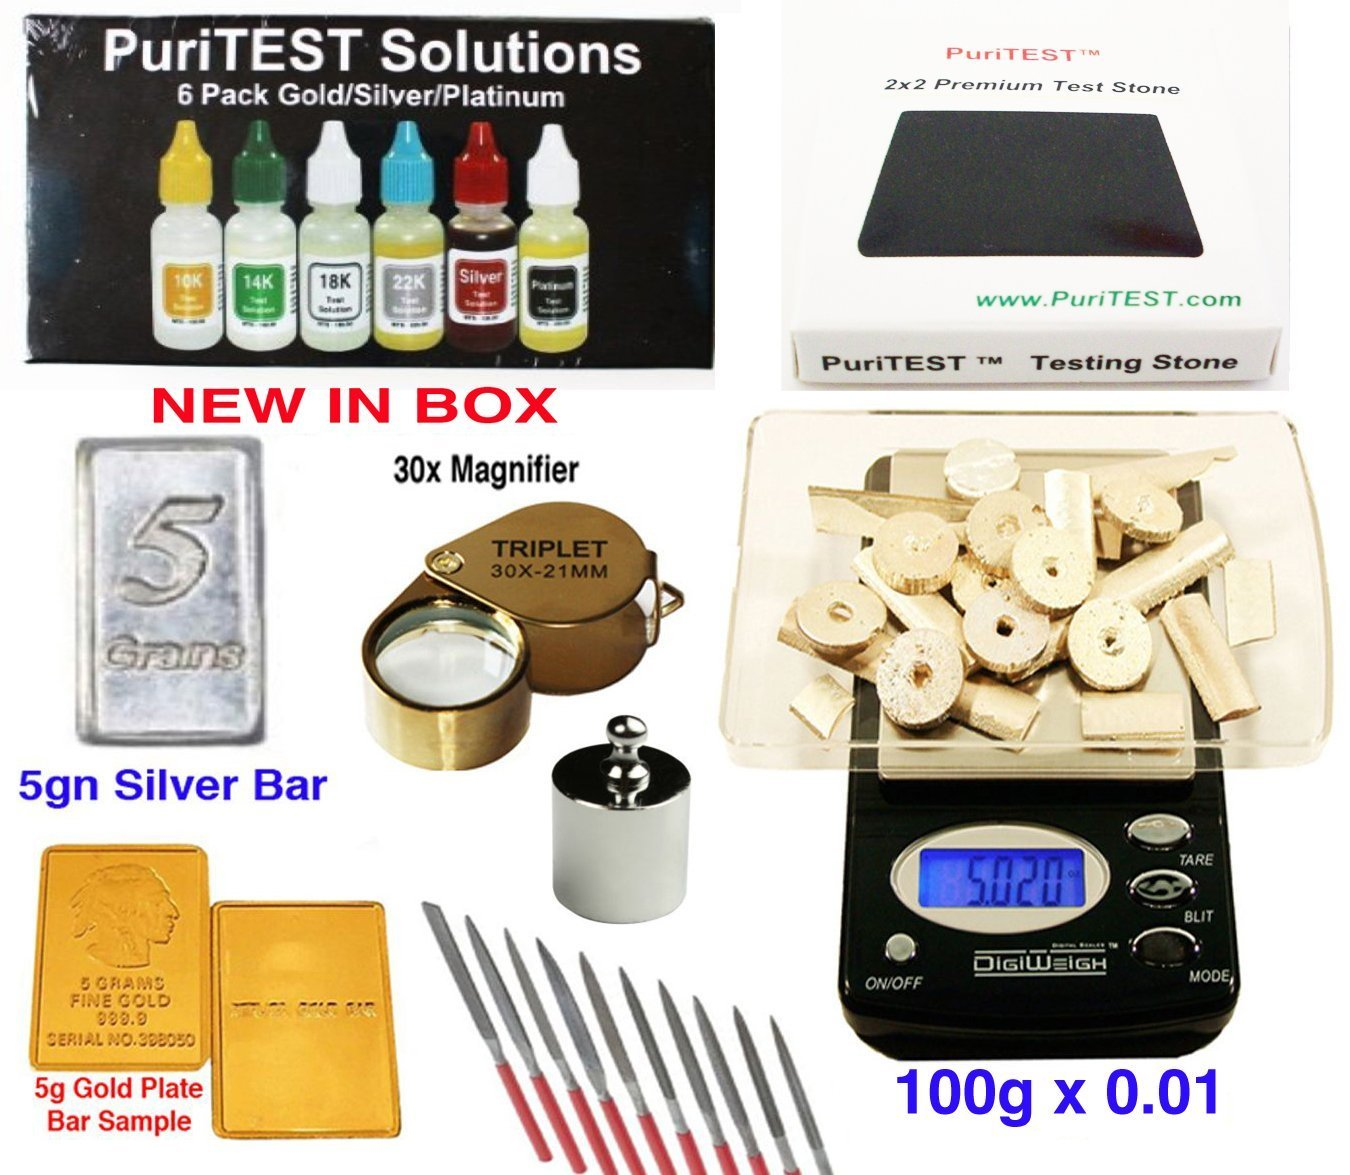 Precious Metal Testing Supplies Digital Scale + Gold/Silver/Platinum Testing Kit + PRO Test Stone + Eye Loupe + 10pcs File Tool Set + Real Solid Silver/Plated Fake Gold by PuriTEST